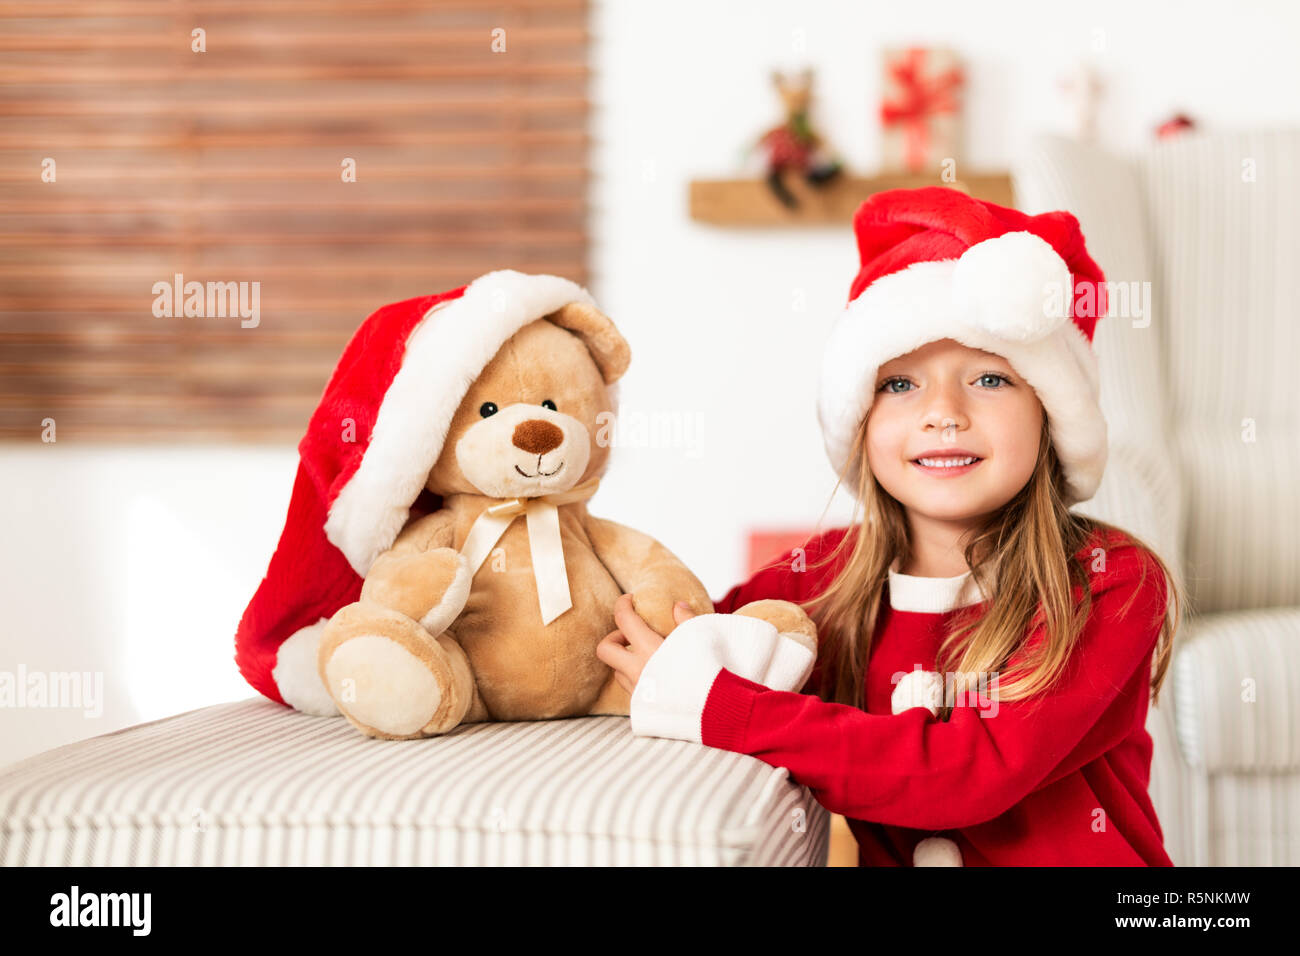 9ff3688ee Cute young girl wearing santa hat holding her christmas present, soft toy  teddy bear. Happy kid with xmas present, smiling and looking at camera.